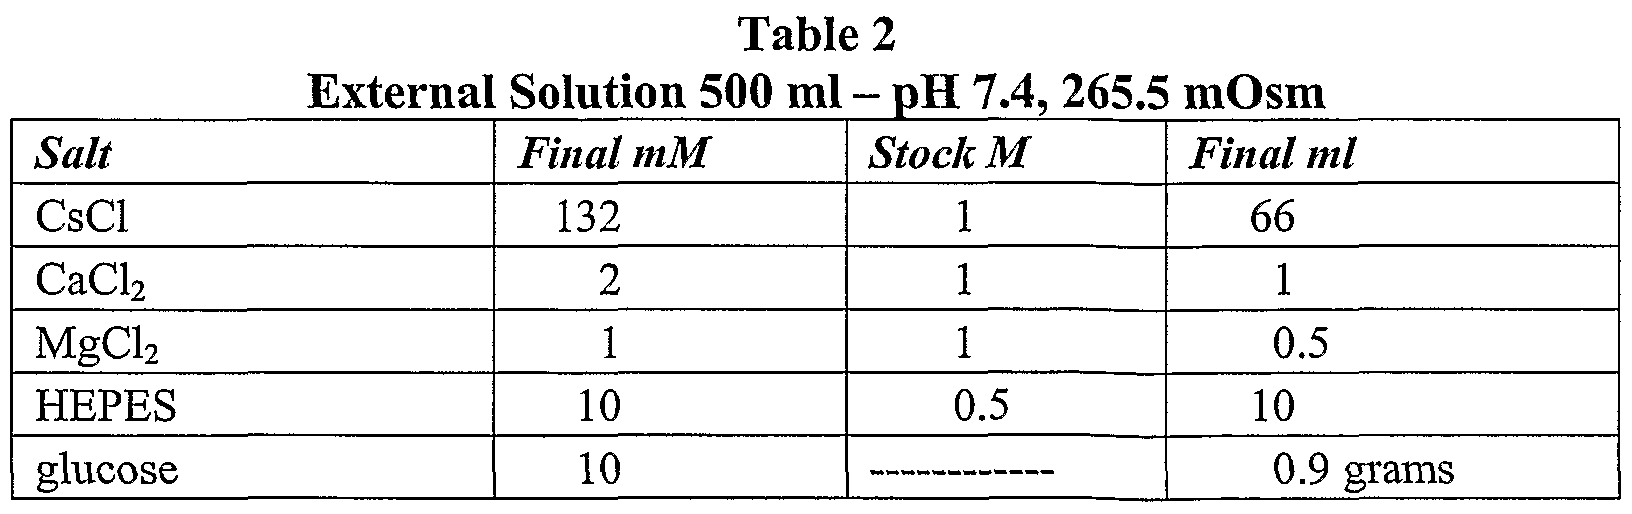 WO2005097779A1 - Diarylamine derivatives as calcium channel